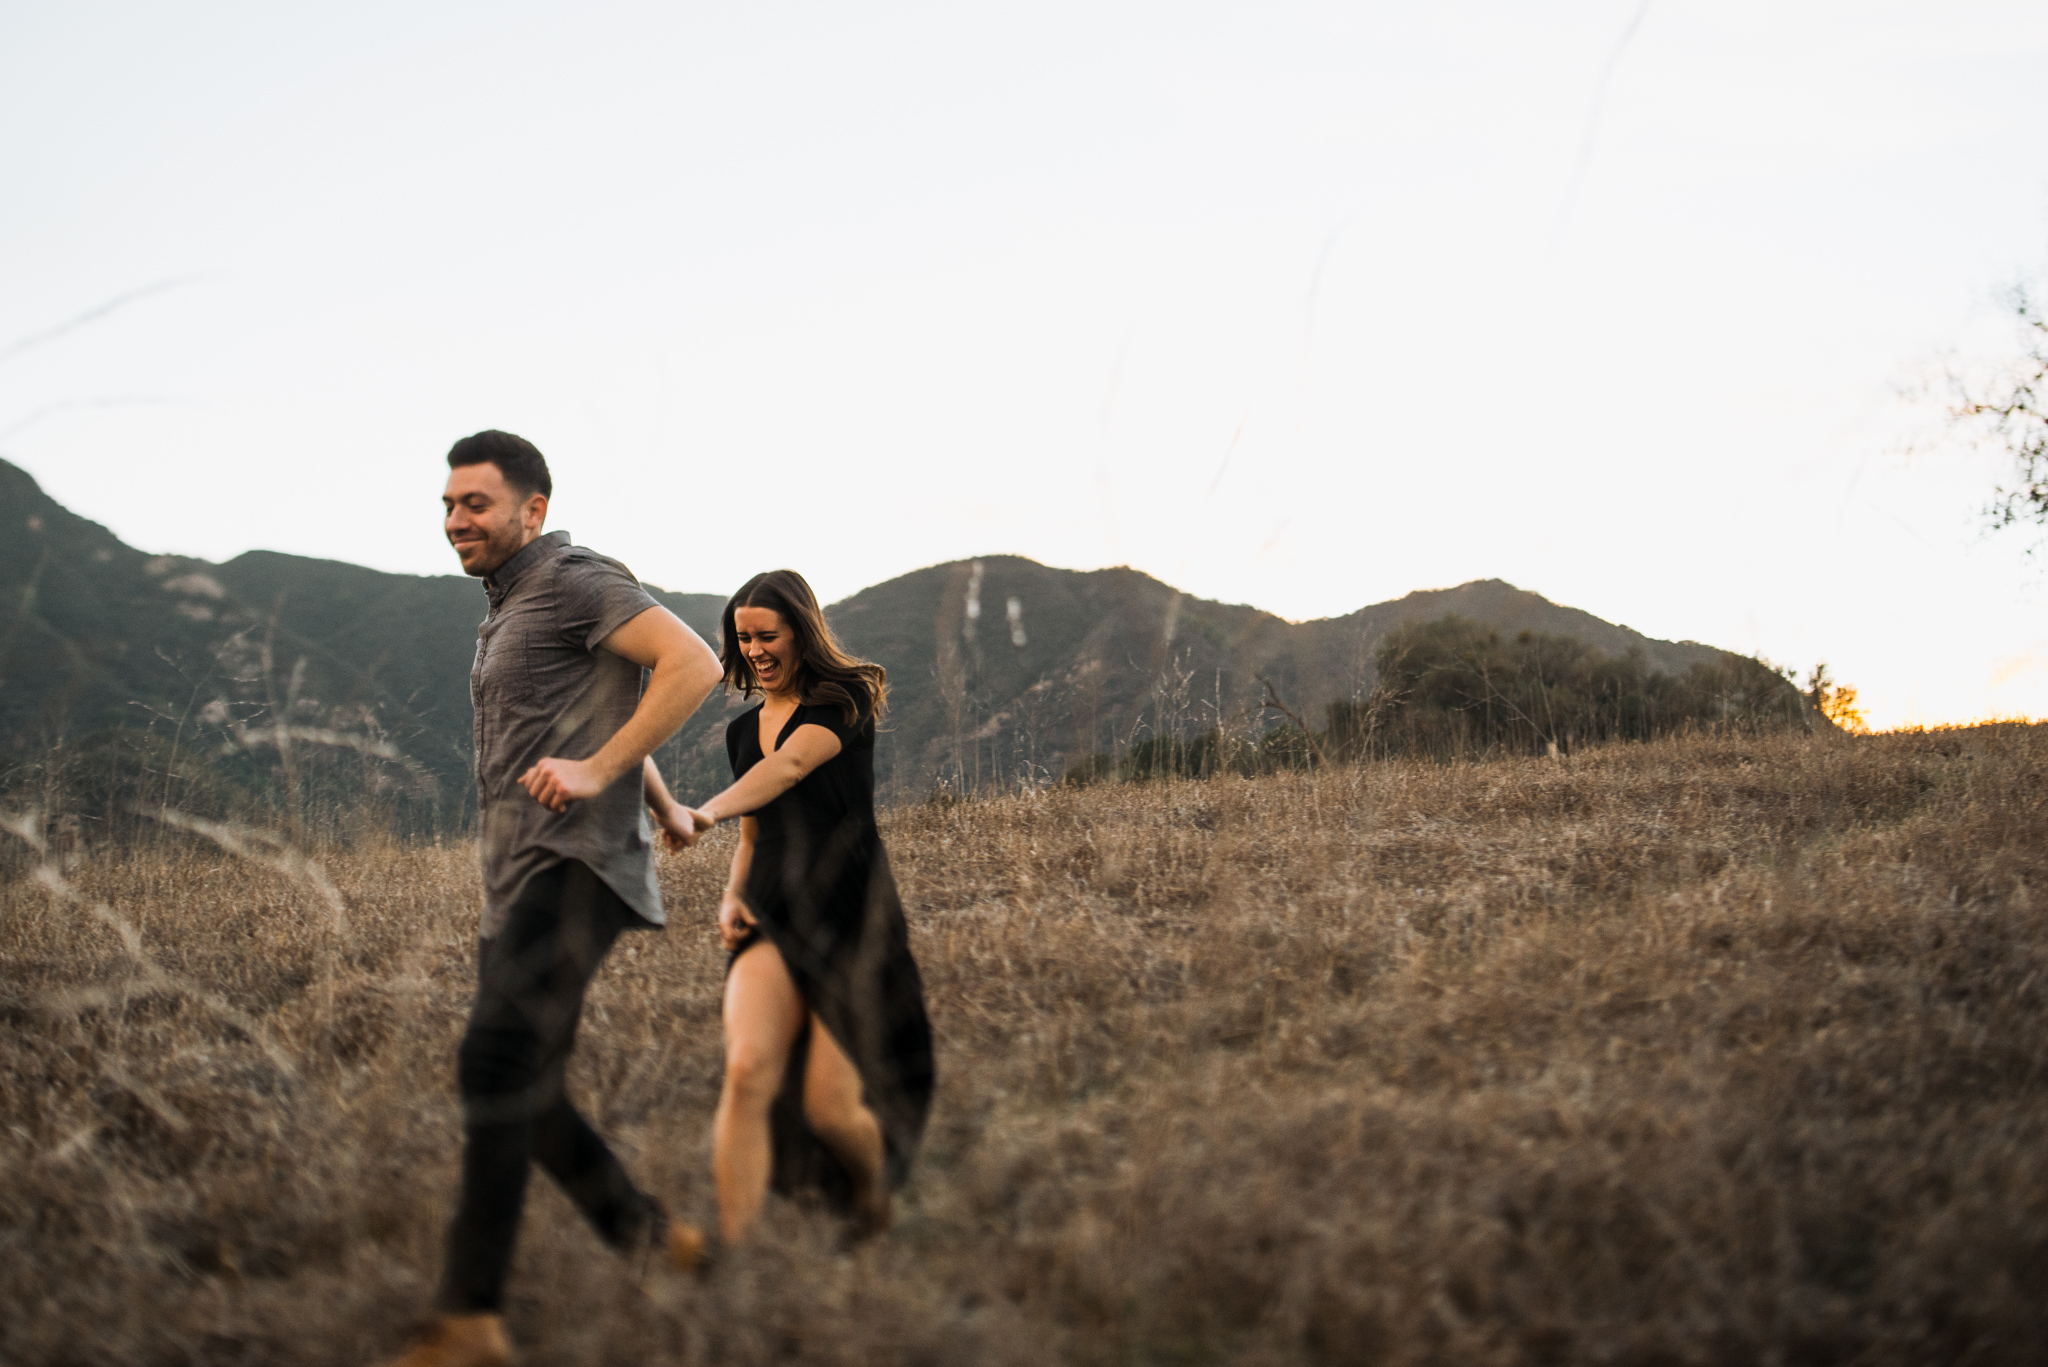 ©Isaiah-&-Taylor-Photography---Malibu-Field-Engagement,-Southern-California-Wedding-Photographer-024.jpg